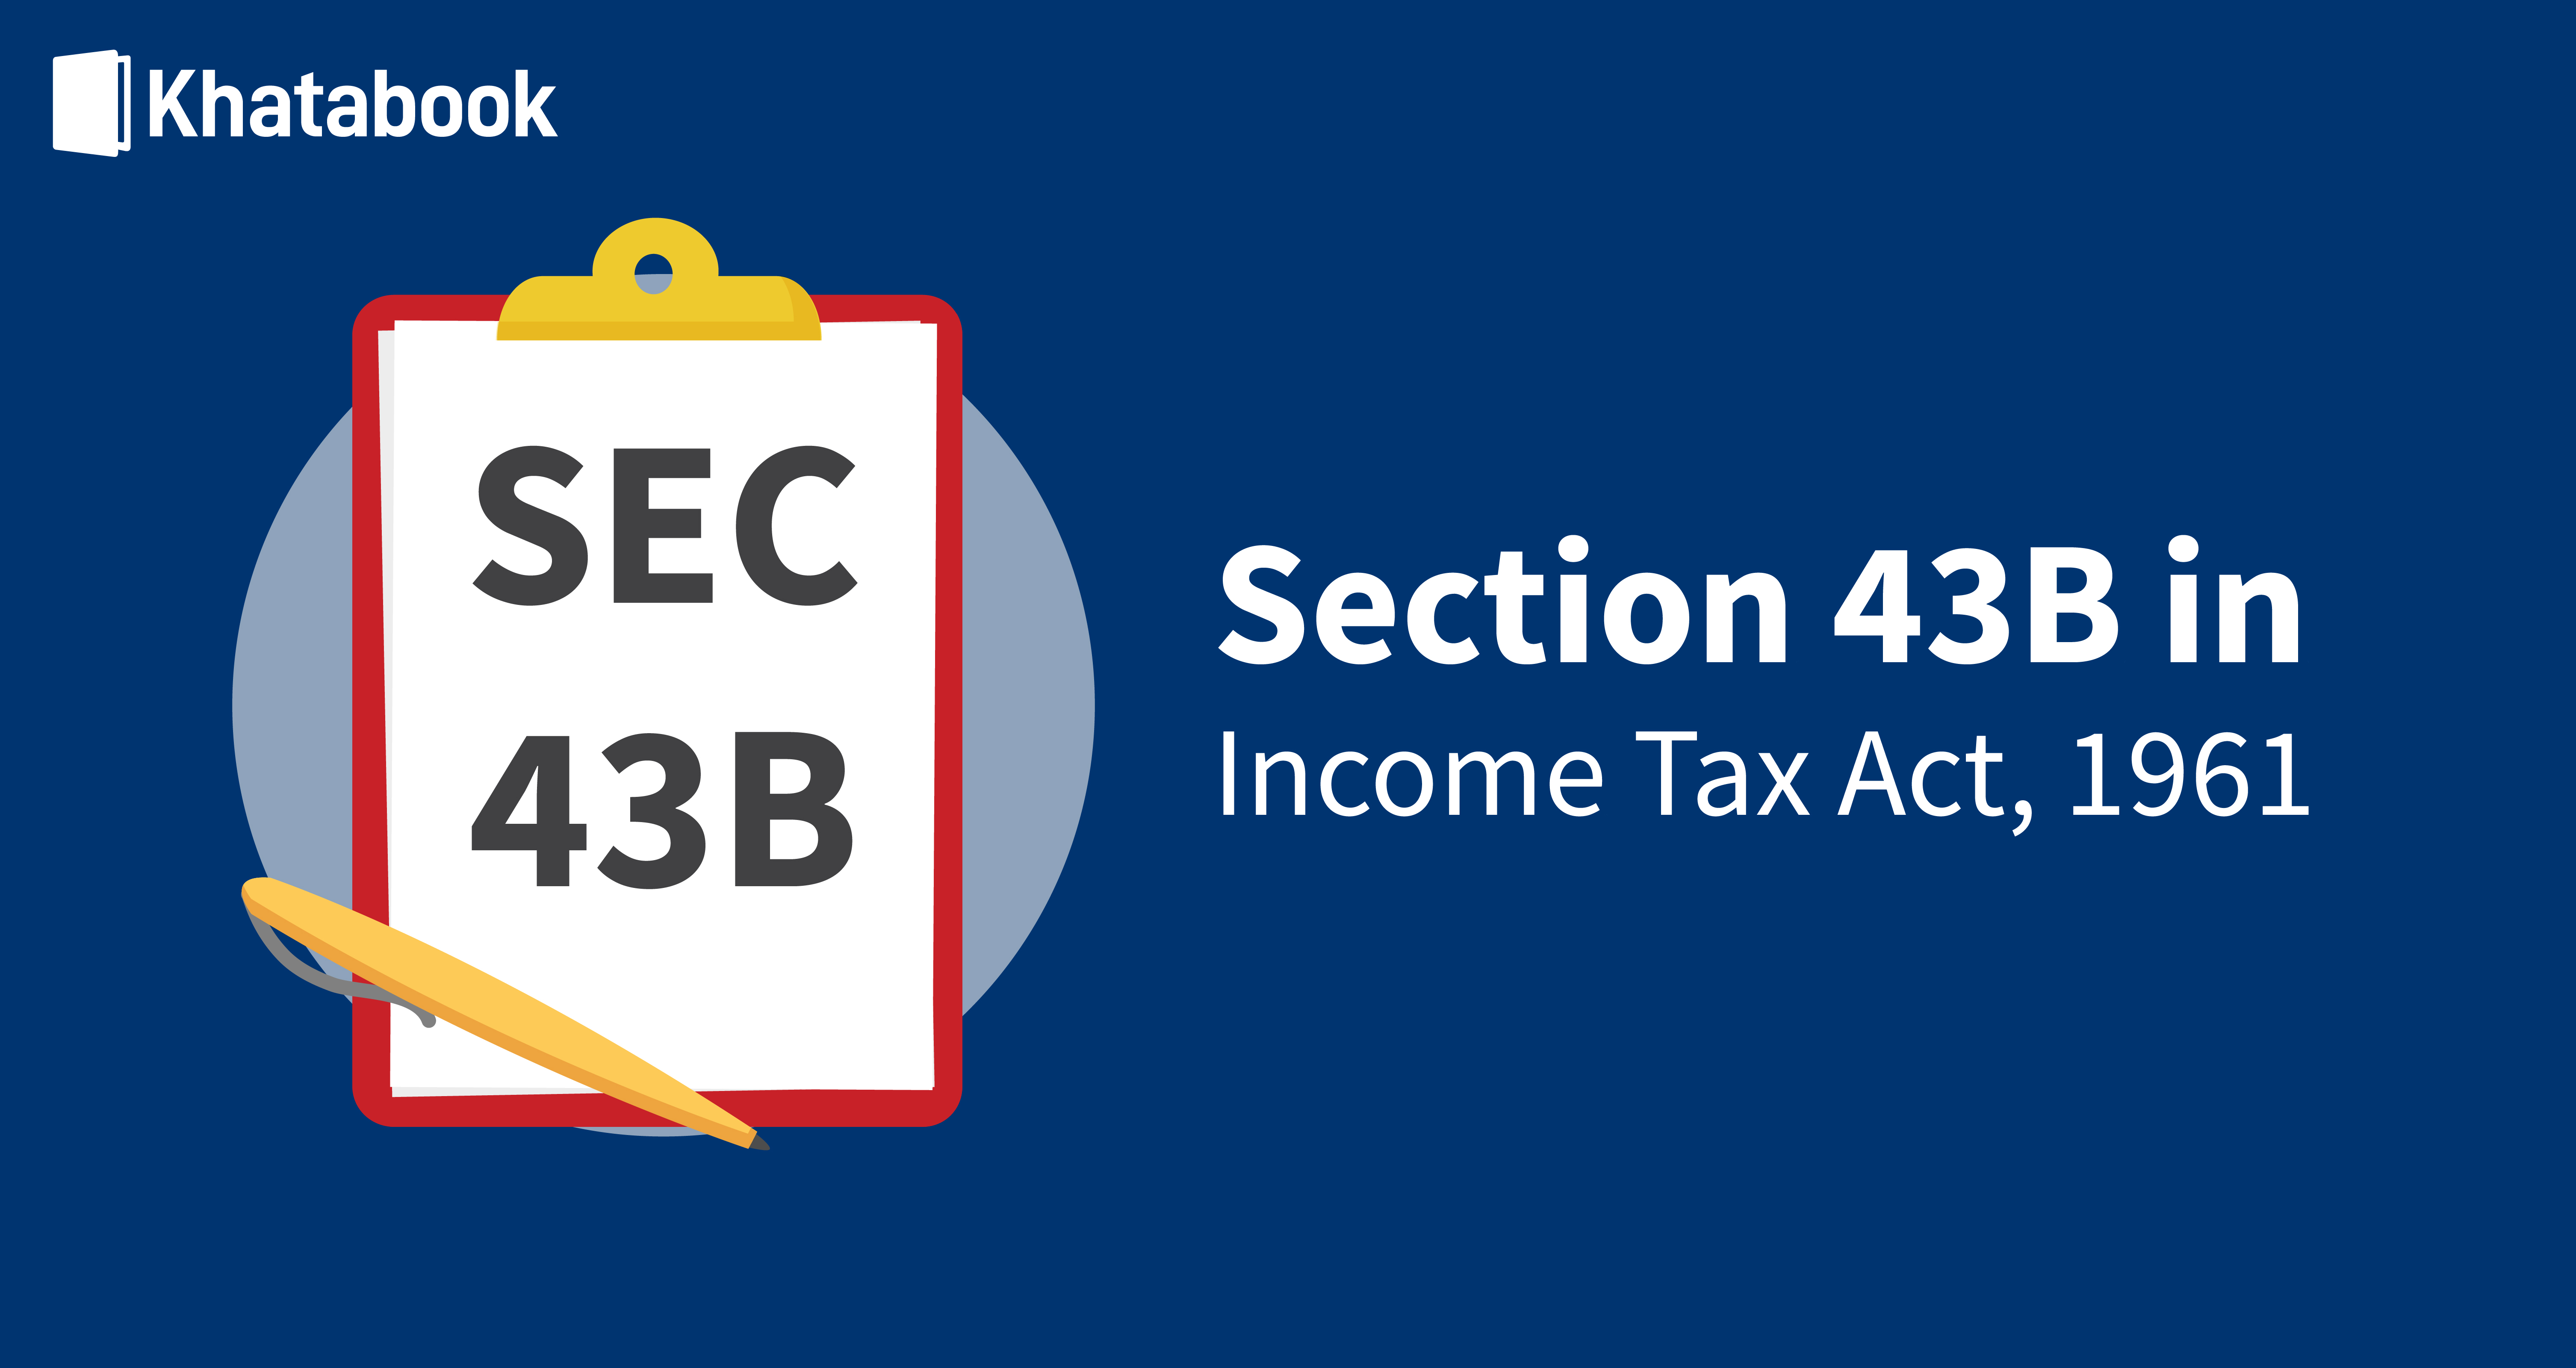 Know About Section 43B in Income Tax Act 1961